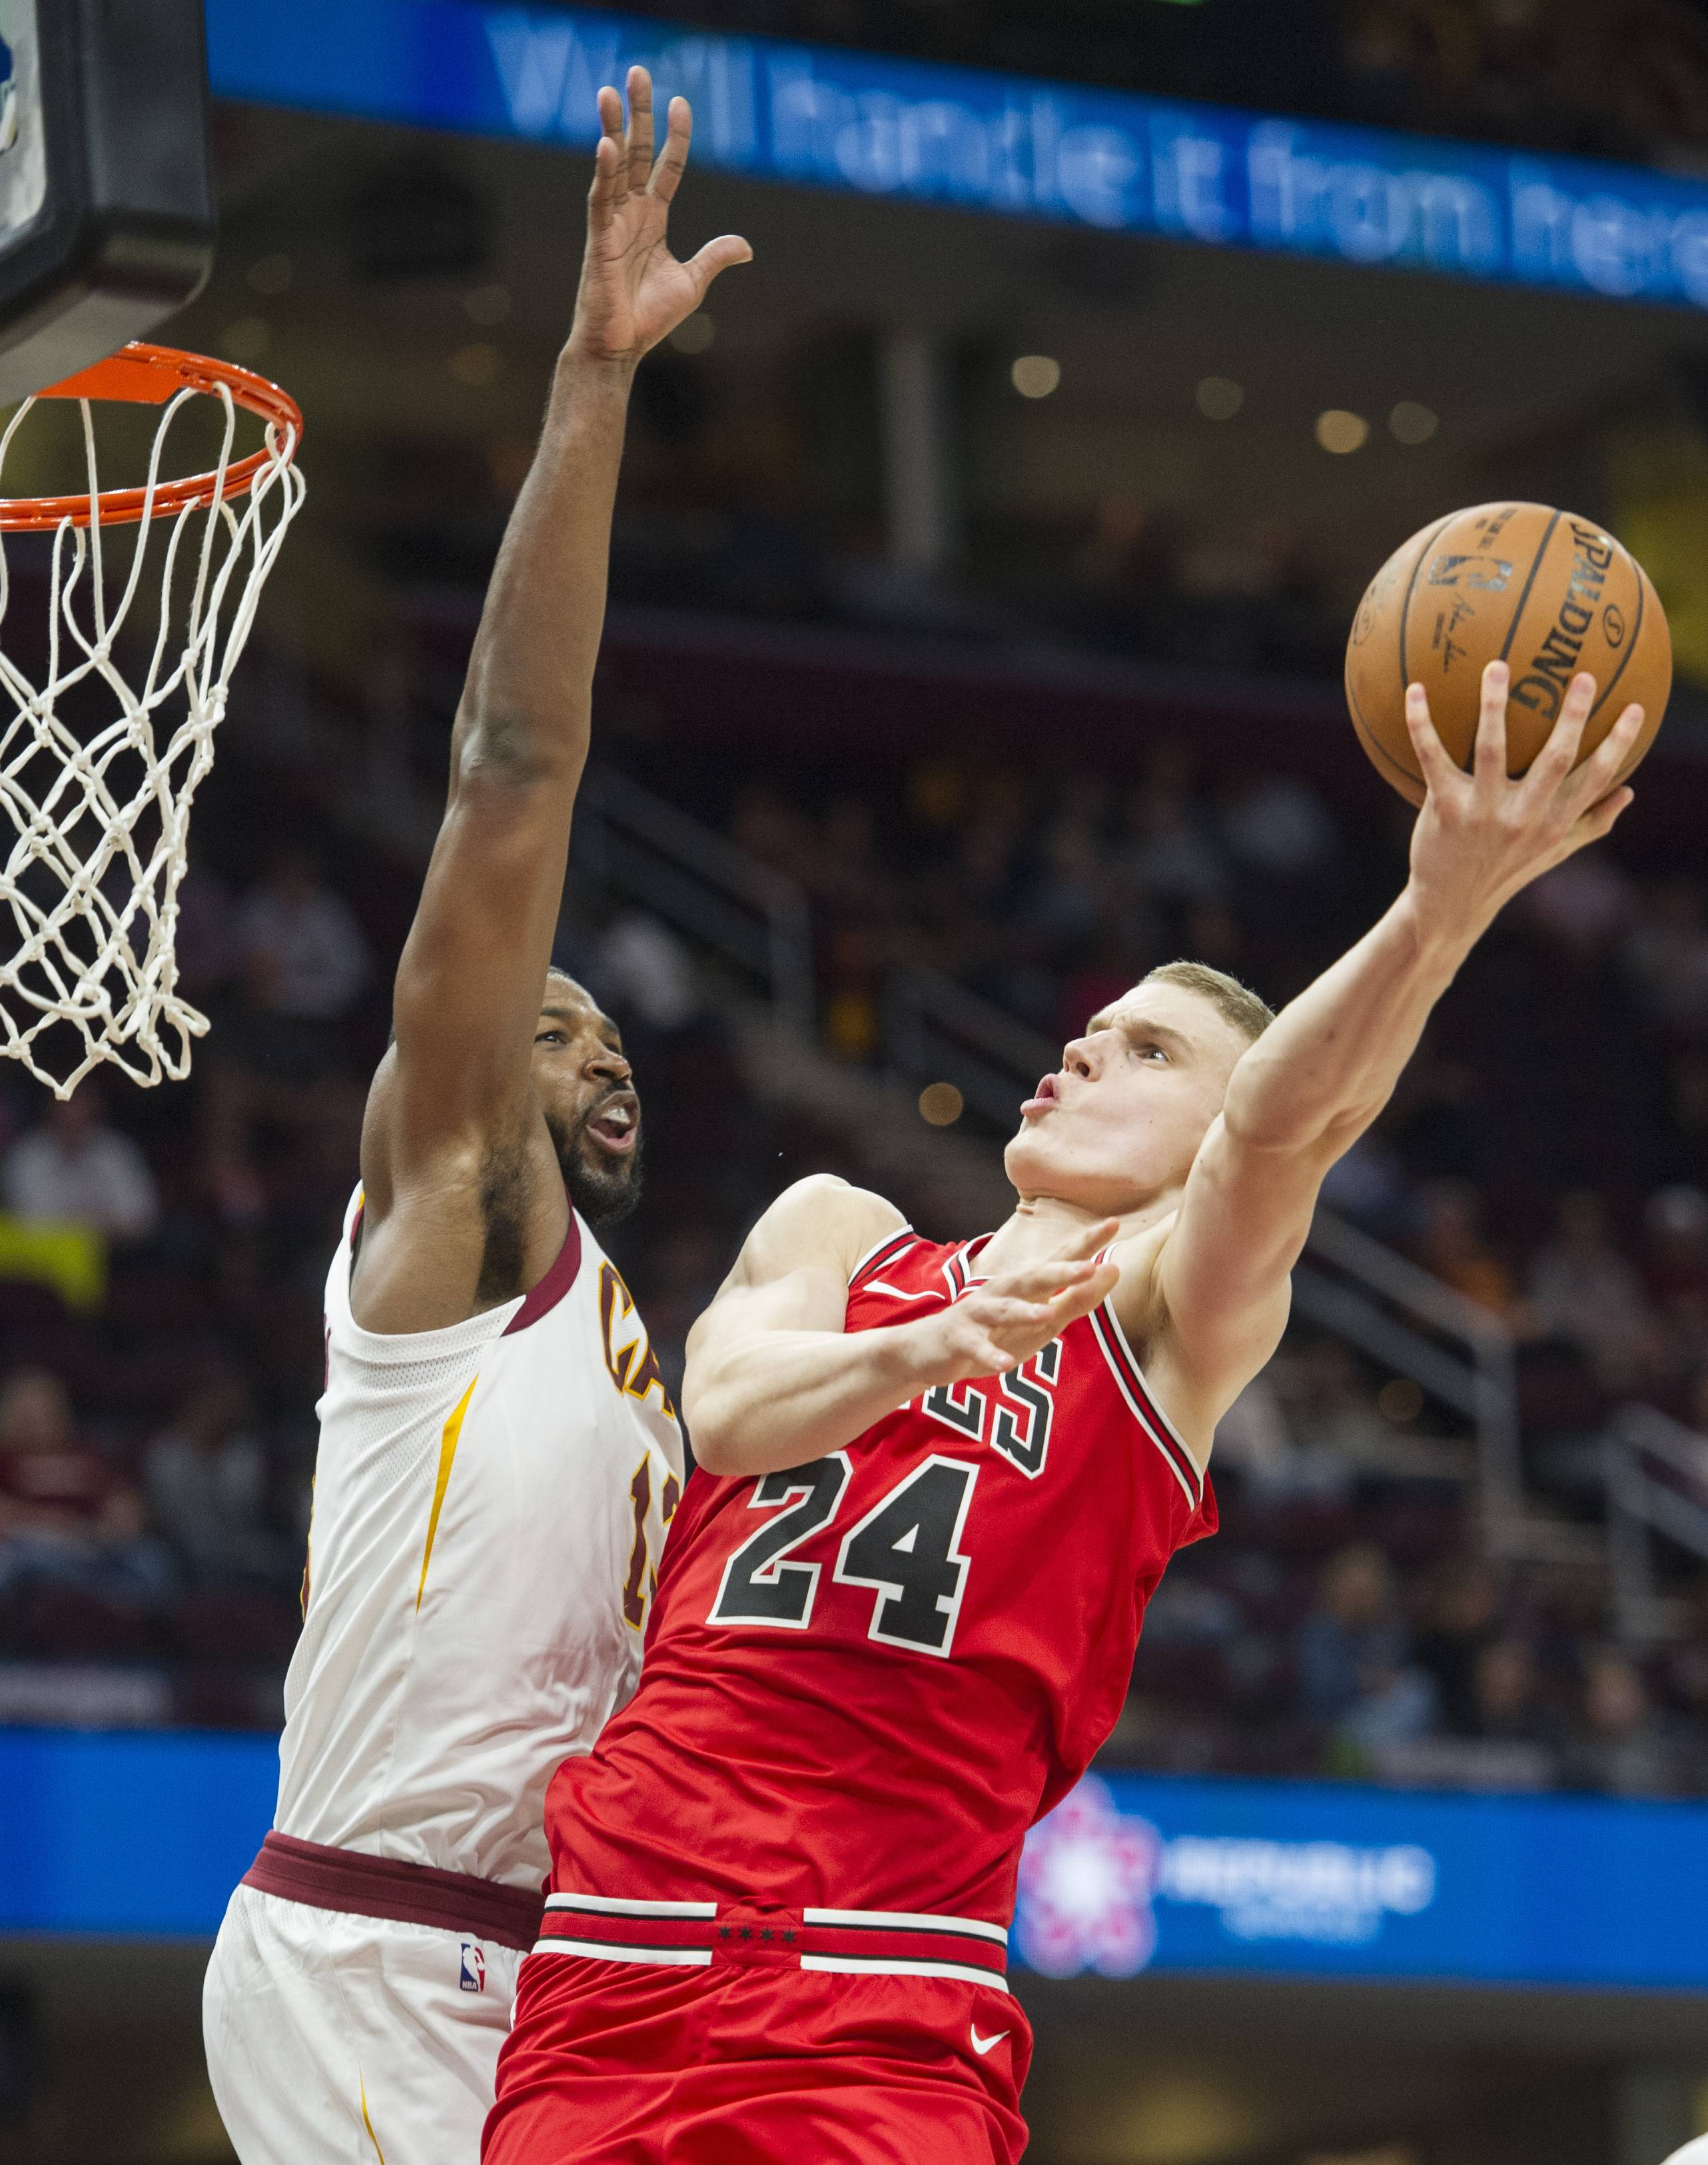 Chicago Bulls' Lauri Markkanen (24) shoots around Cleveland Cavaliers' Tristan Thompson during the second half of an NBA preseason basketball game in Cleveland, Tuesday, Oct. 10, 2017. The Bulls won 108-94. (AP Photo/Phil Long)